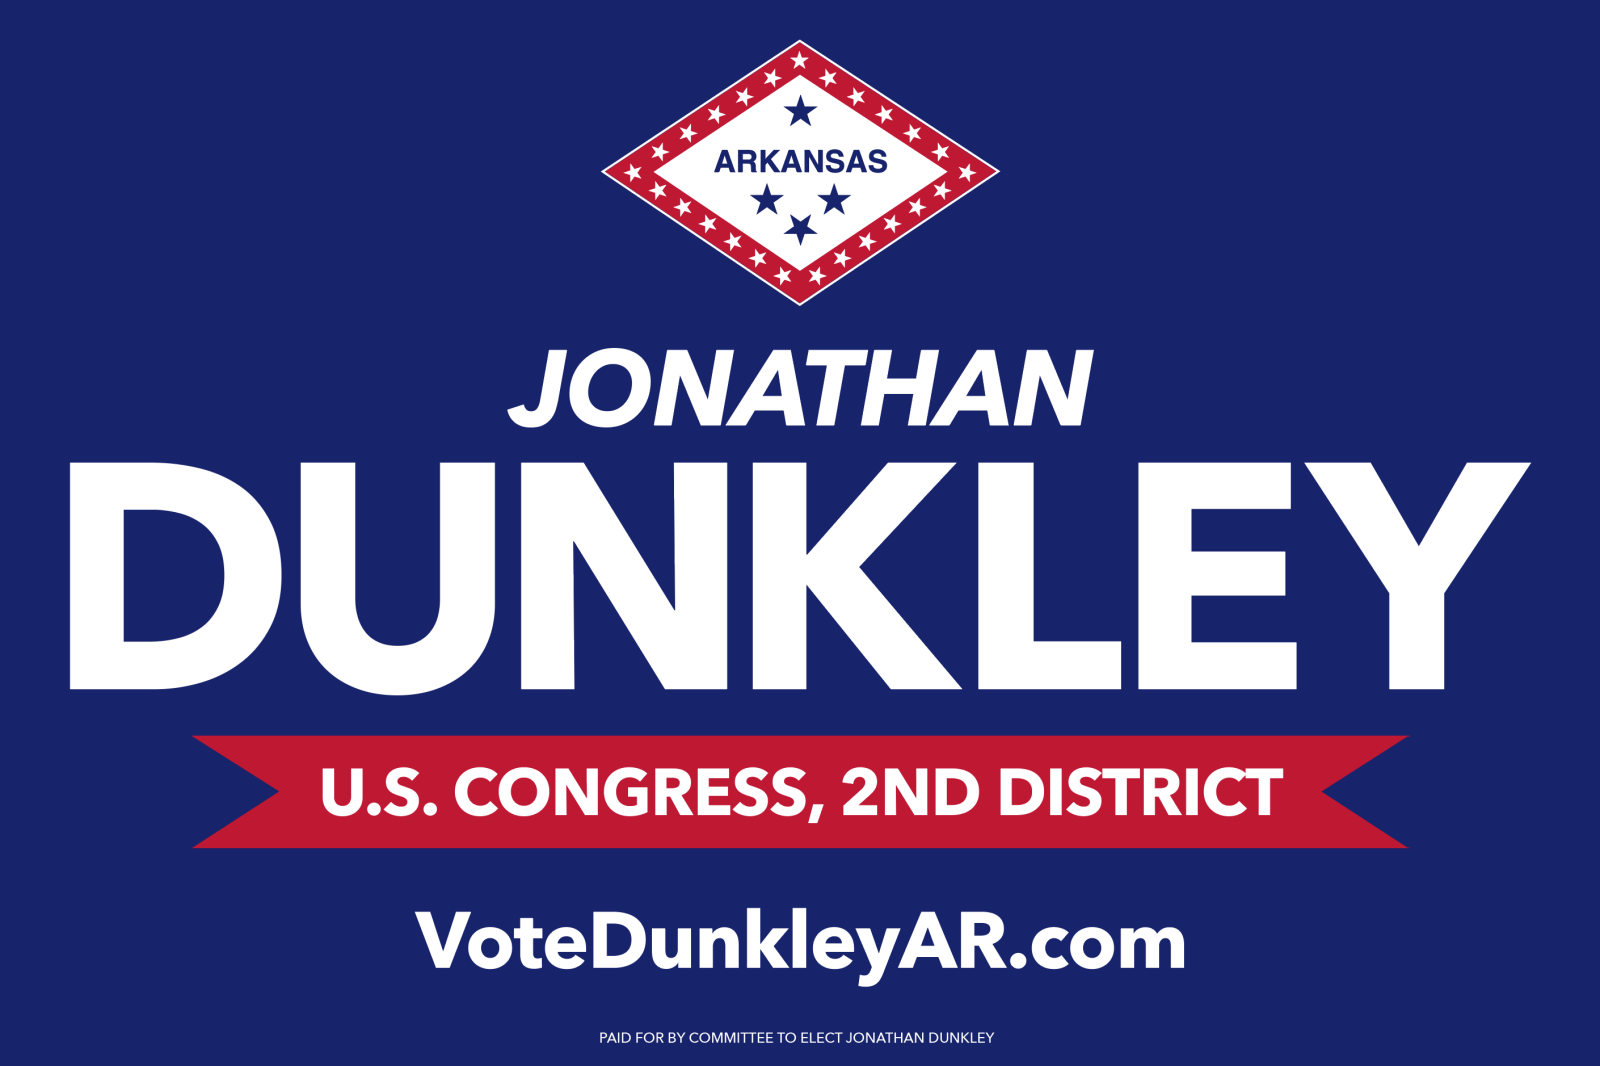 Jonathan Dunkley for Congress